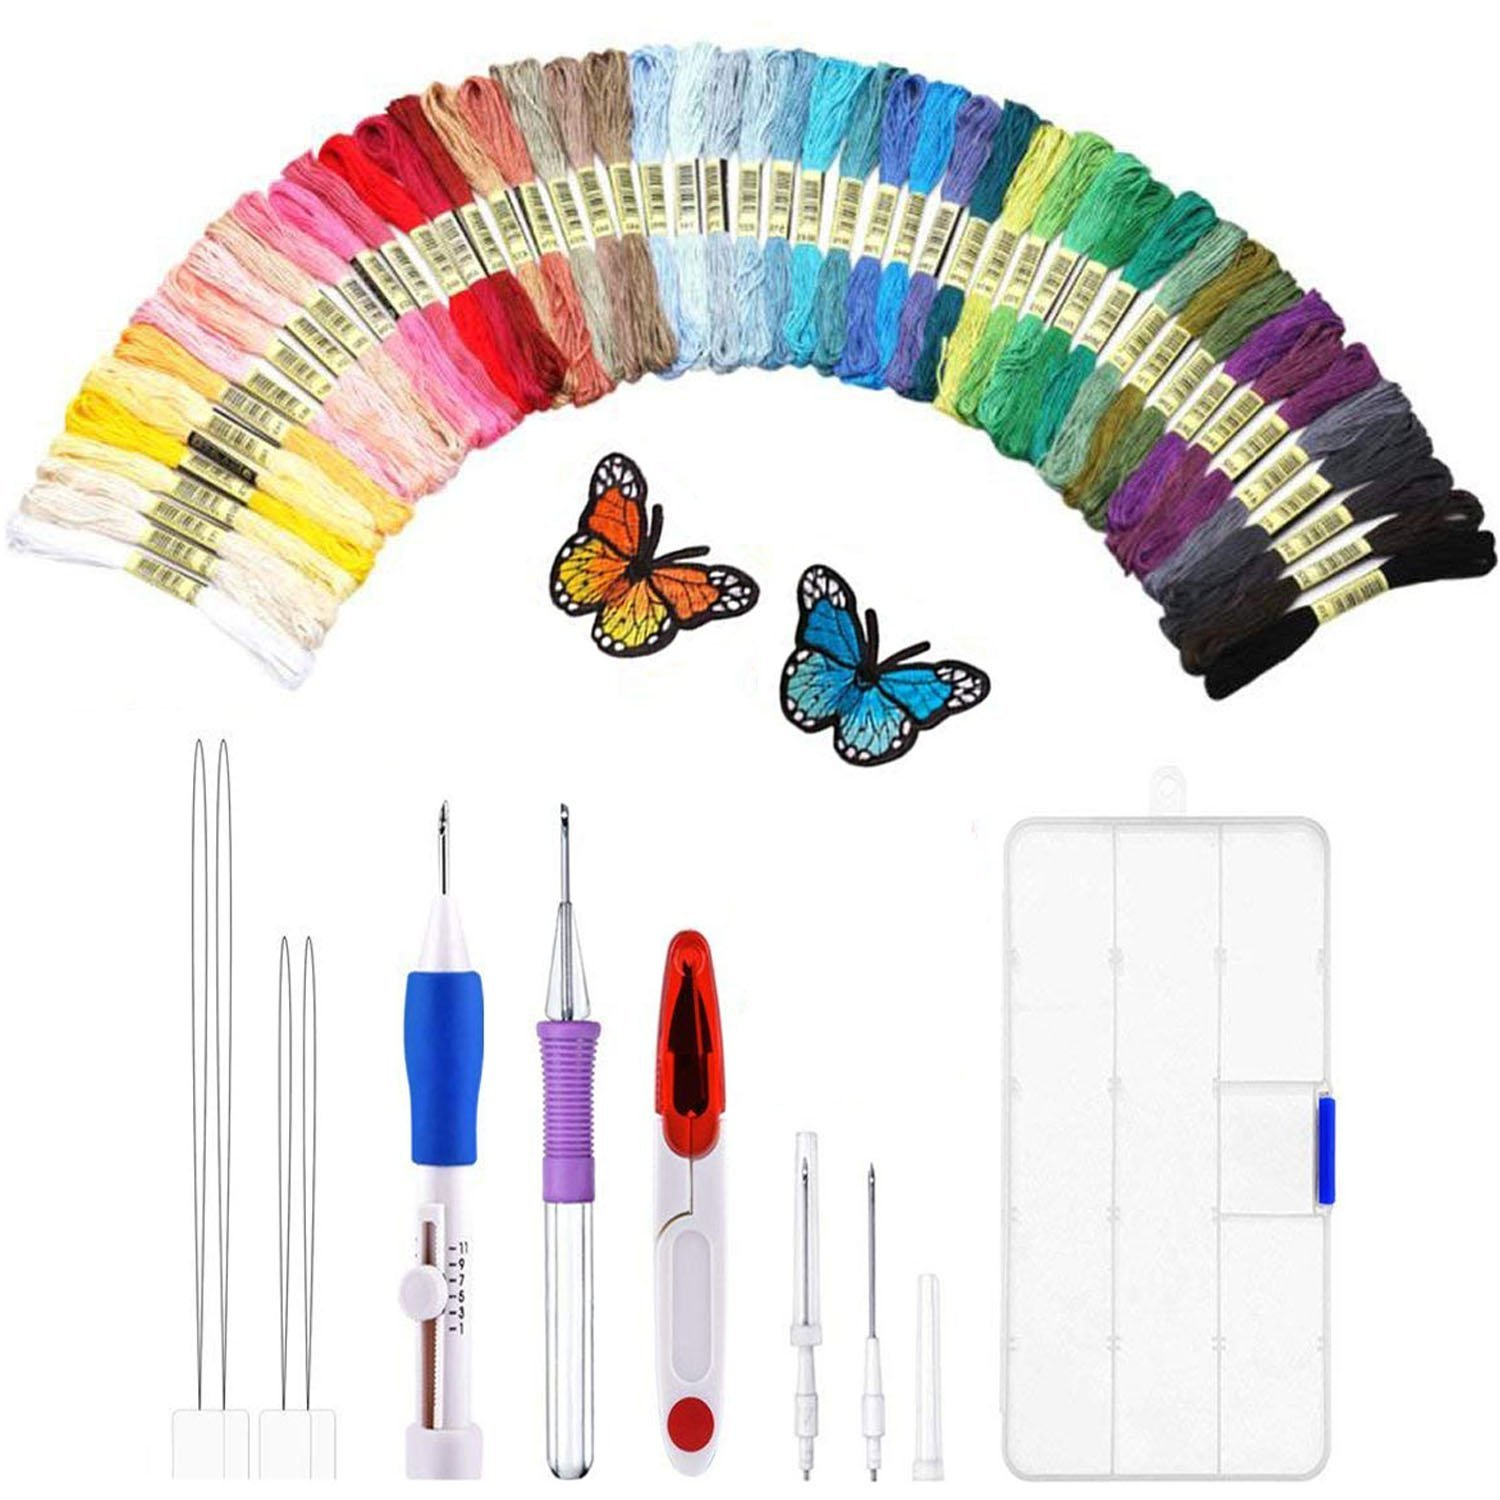 Magic Embroidery Pen Punch Needle, Embroidery Stitching Punch Kit Craft Tool Embroidery Pen Set, Including 50 Threads for Sewing Knitting DIY Threaders IU